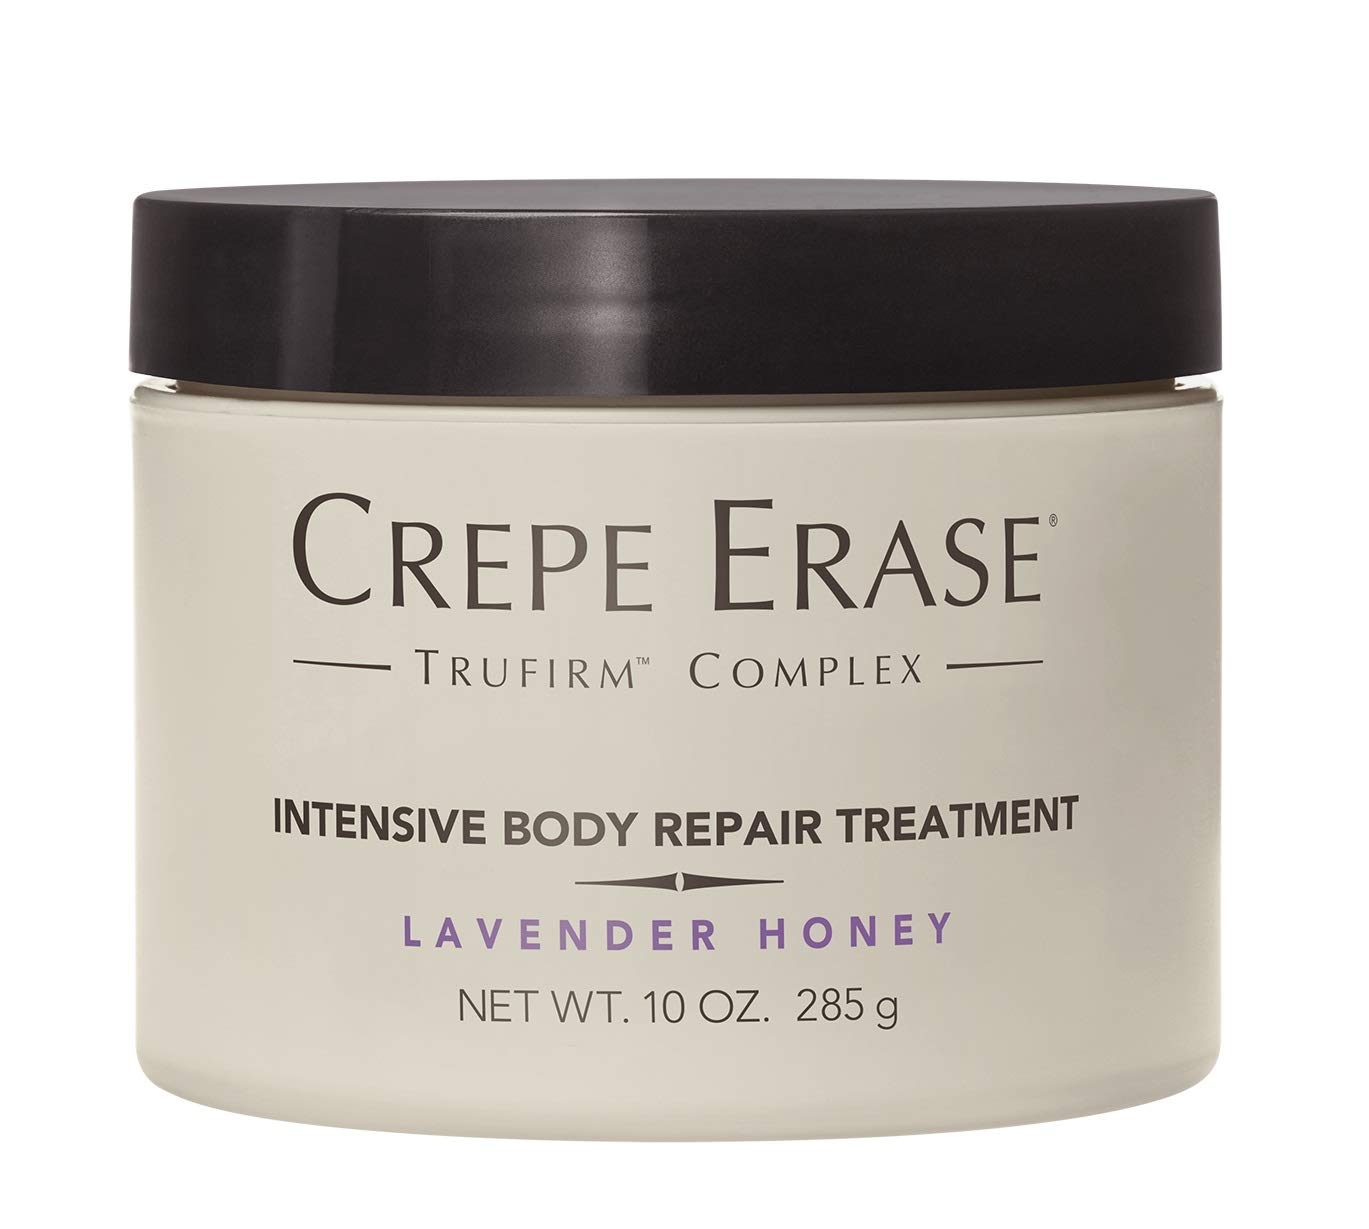 Crepe Erase – Intensive Body Repair Treatment – Lavender Honey Scented – TruFirm Complex – 10 Ounces by Crepe Erase (Image #1)